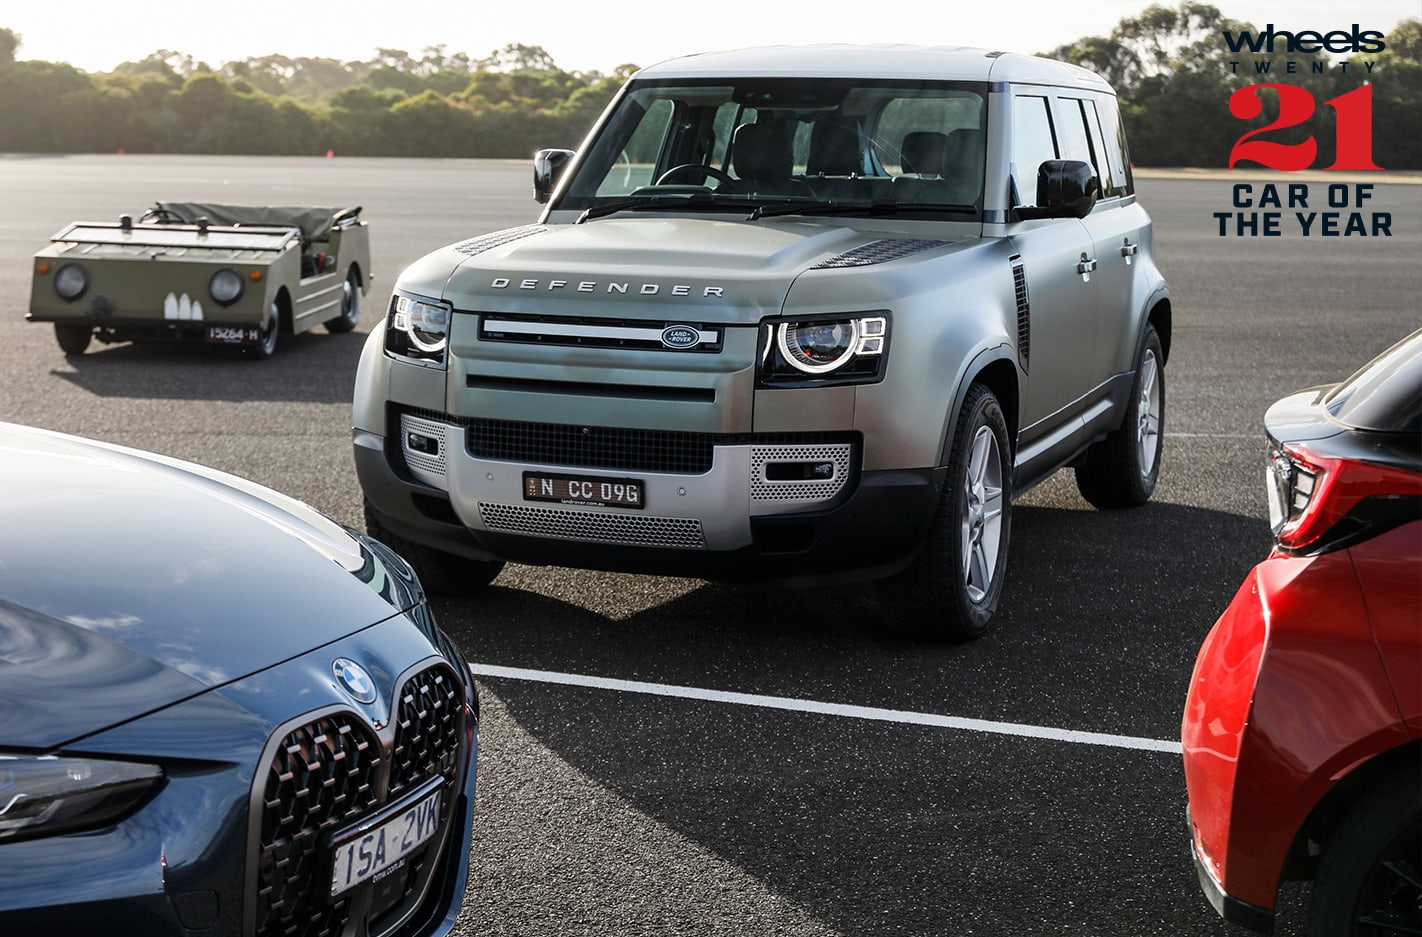 Wheels Car of the Year 2021 contender Land Rover Defender